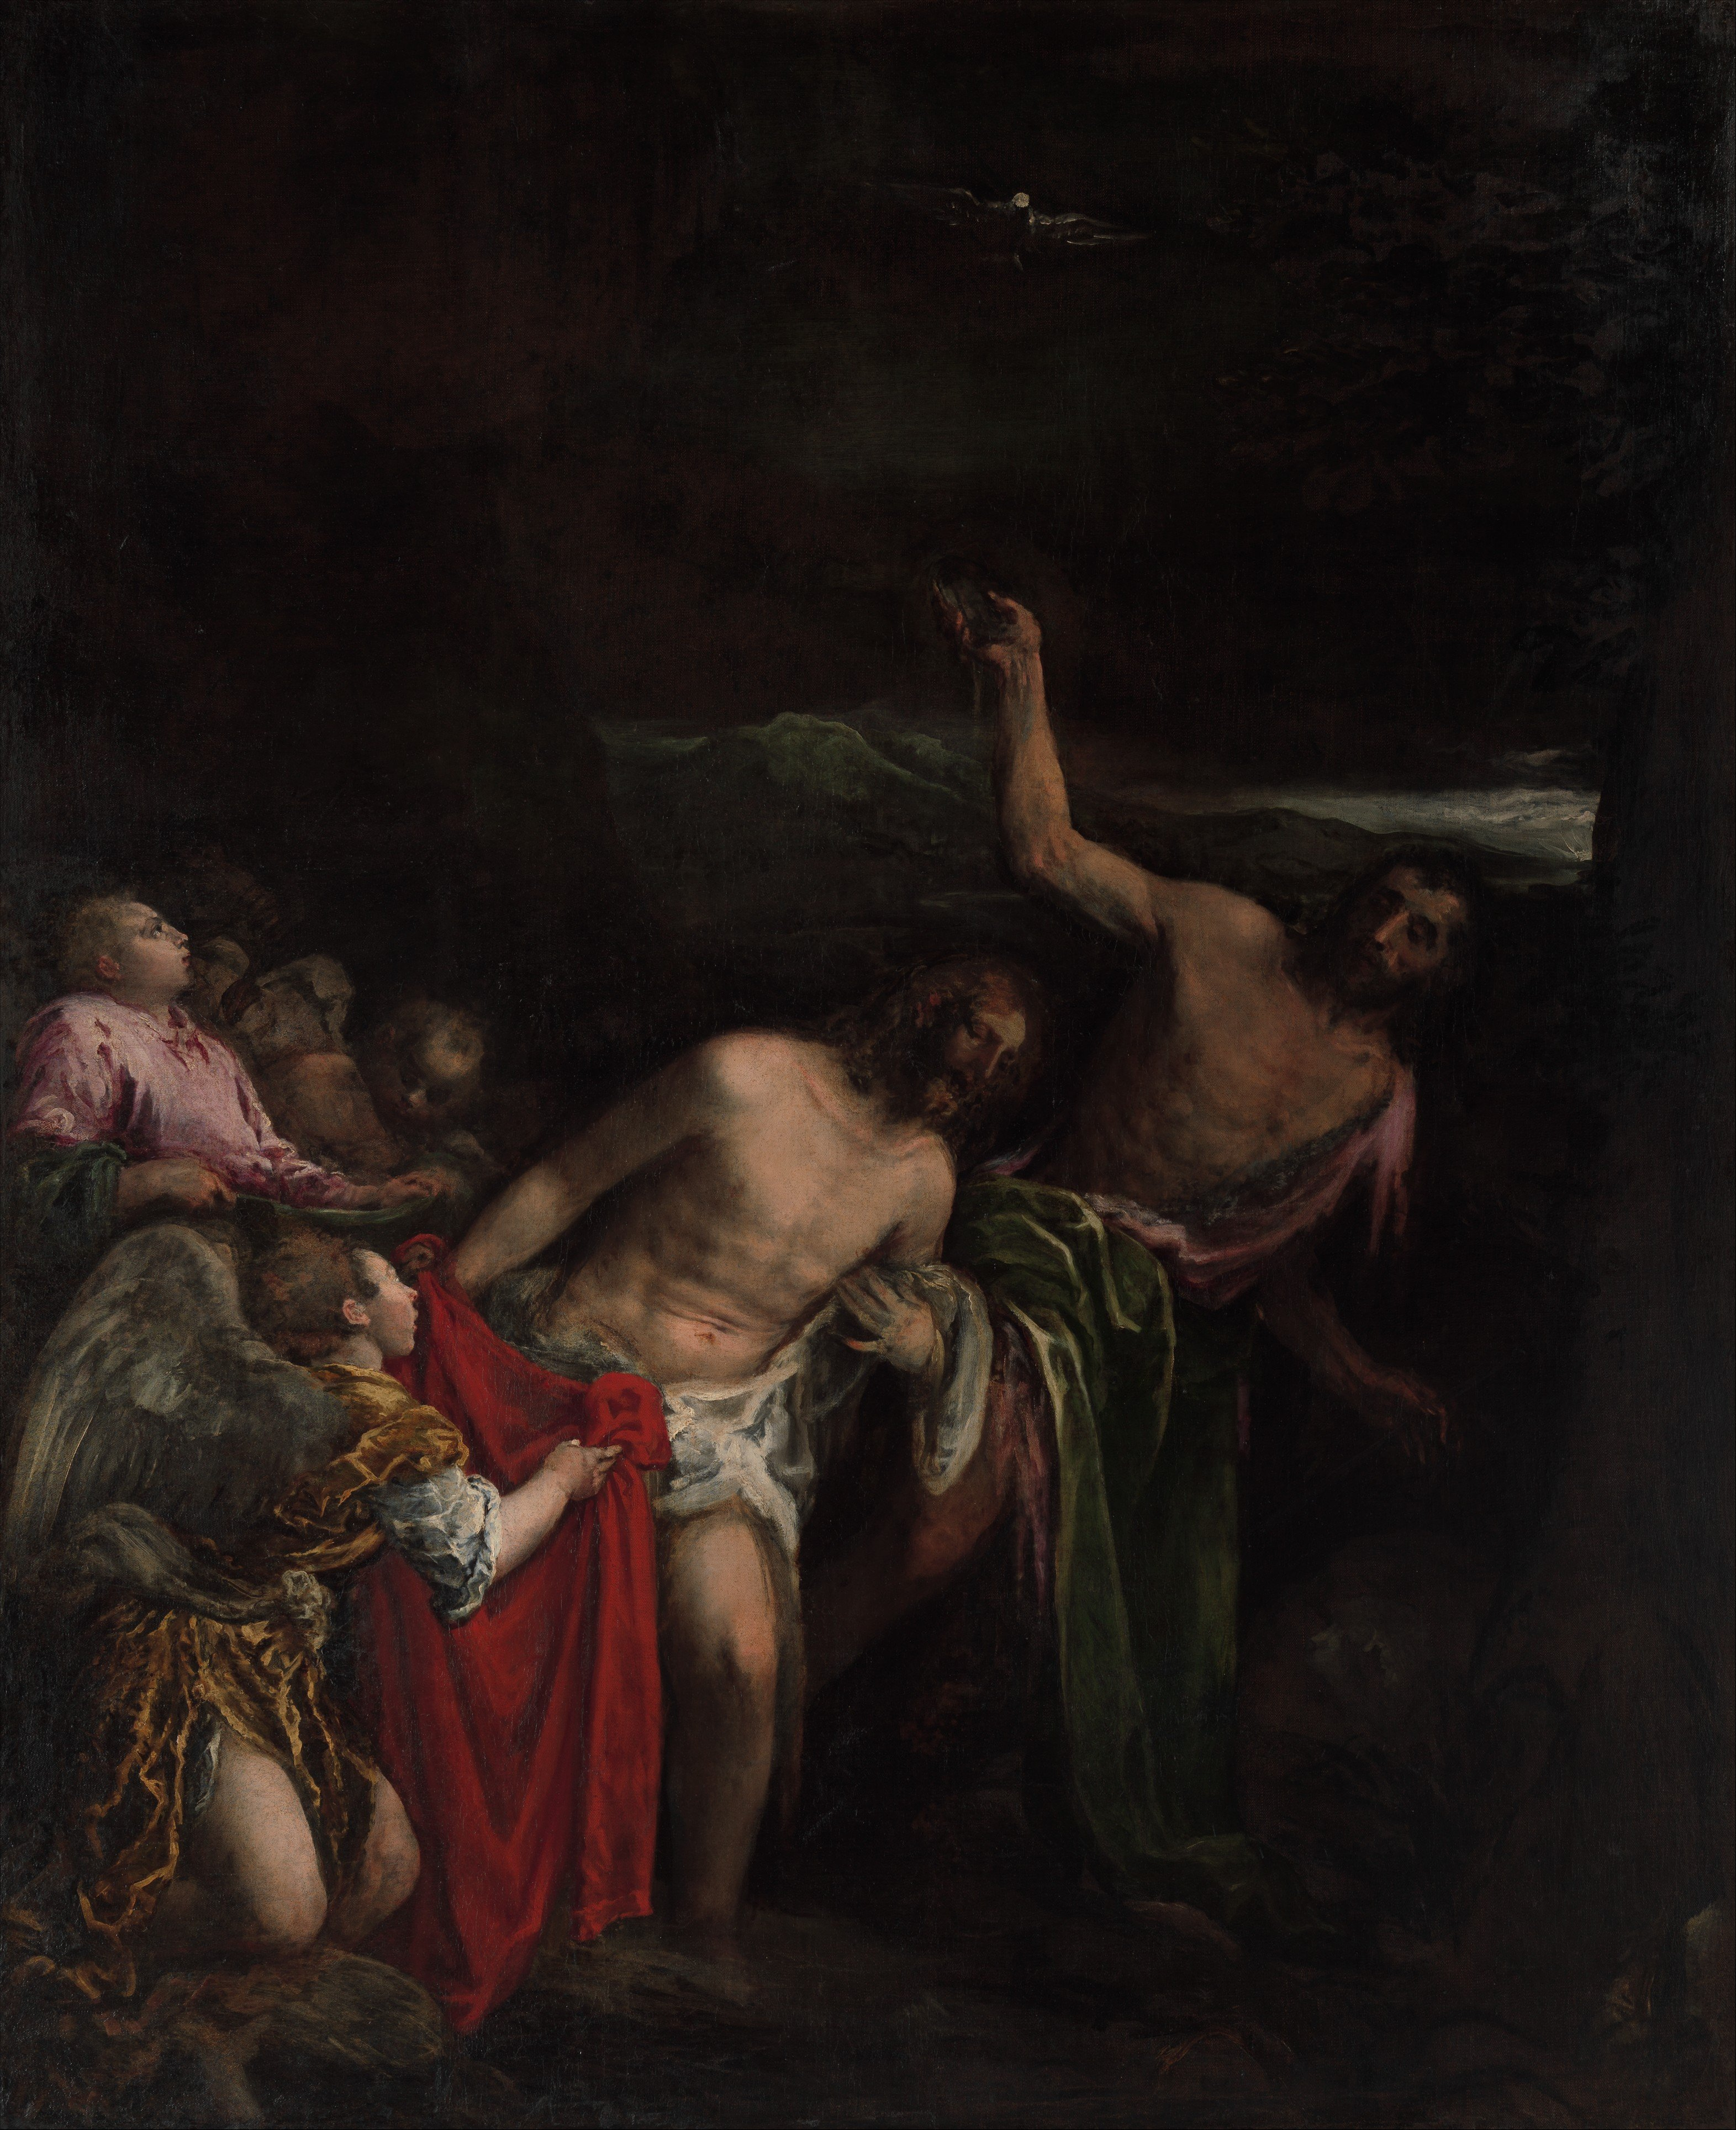 Jacopo Bassano, The Baptism of Christ, ca.1590. Oil on canvas, 191.8 x 160.3 cm. Partial and Promised Gift of Mr. and Mrs. Mark Fisch, 2012. Courtesy The Metropolitan Museum of Art.